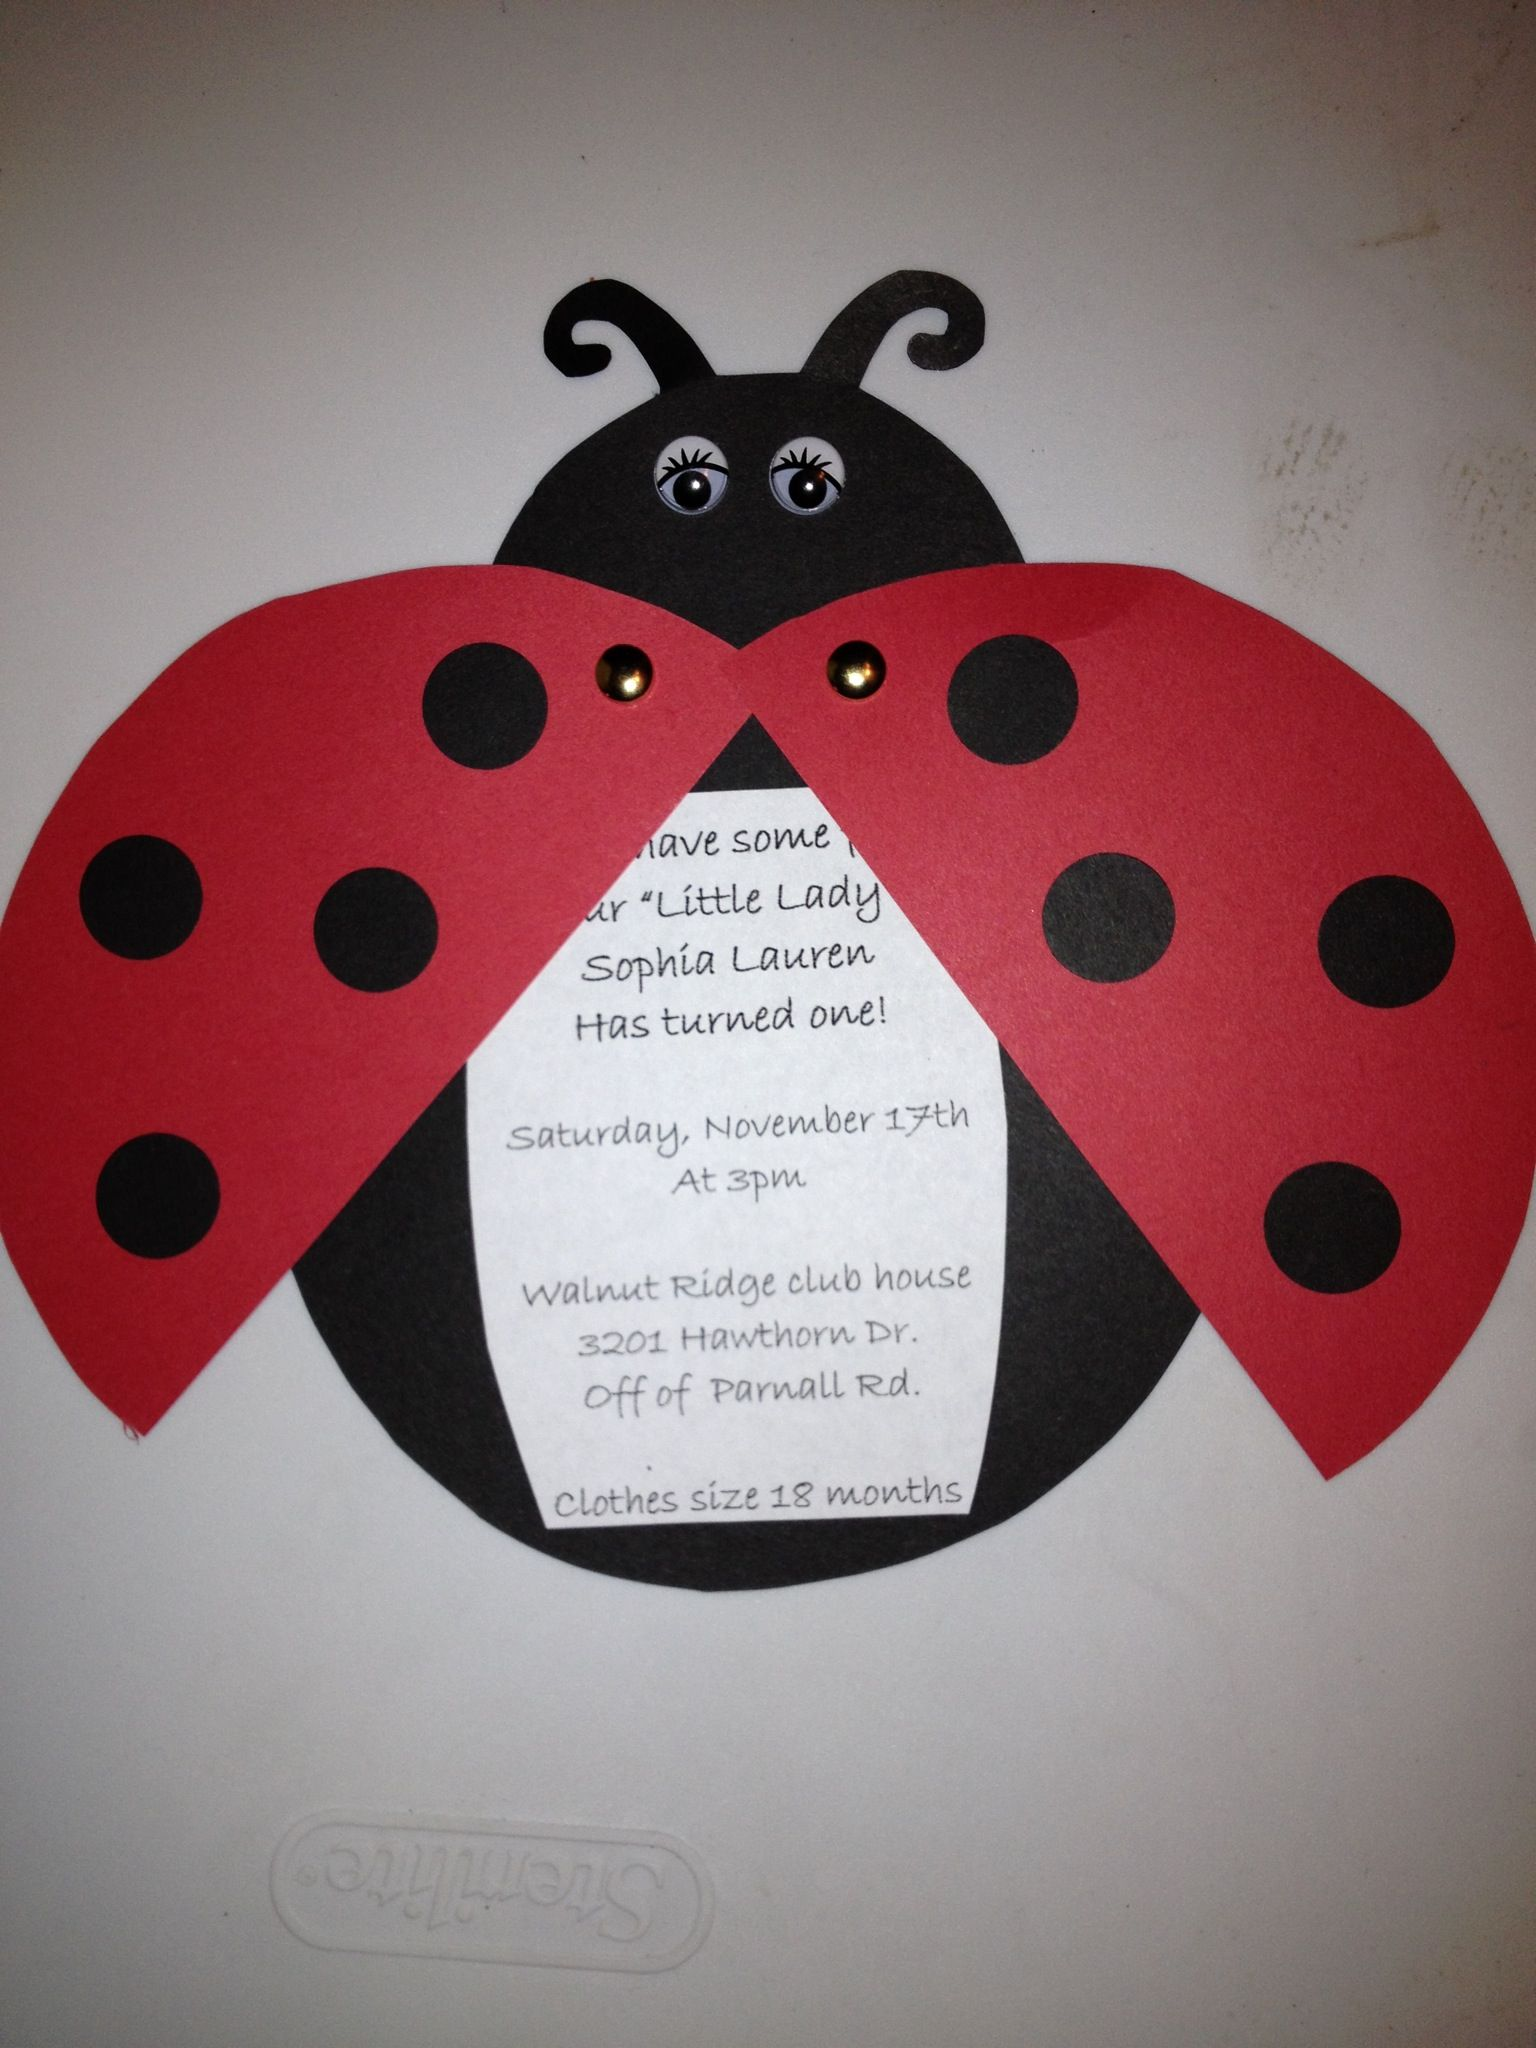 Ladybug party invitations.... Come have some fun, Sophia has turned ...